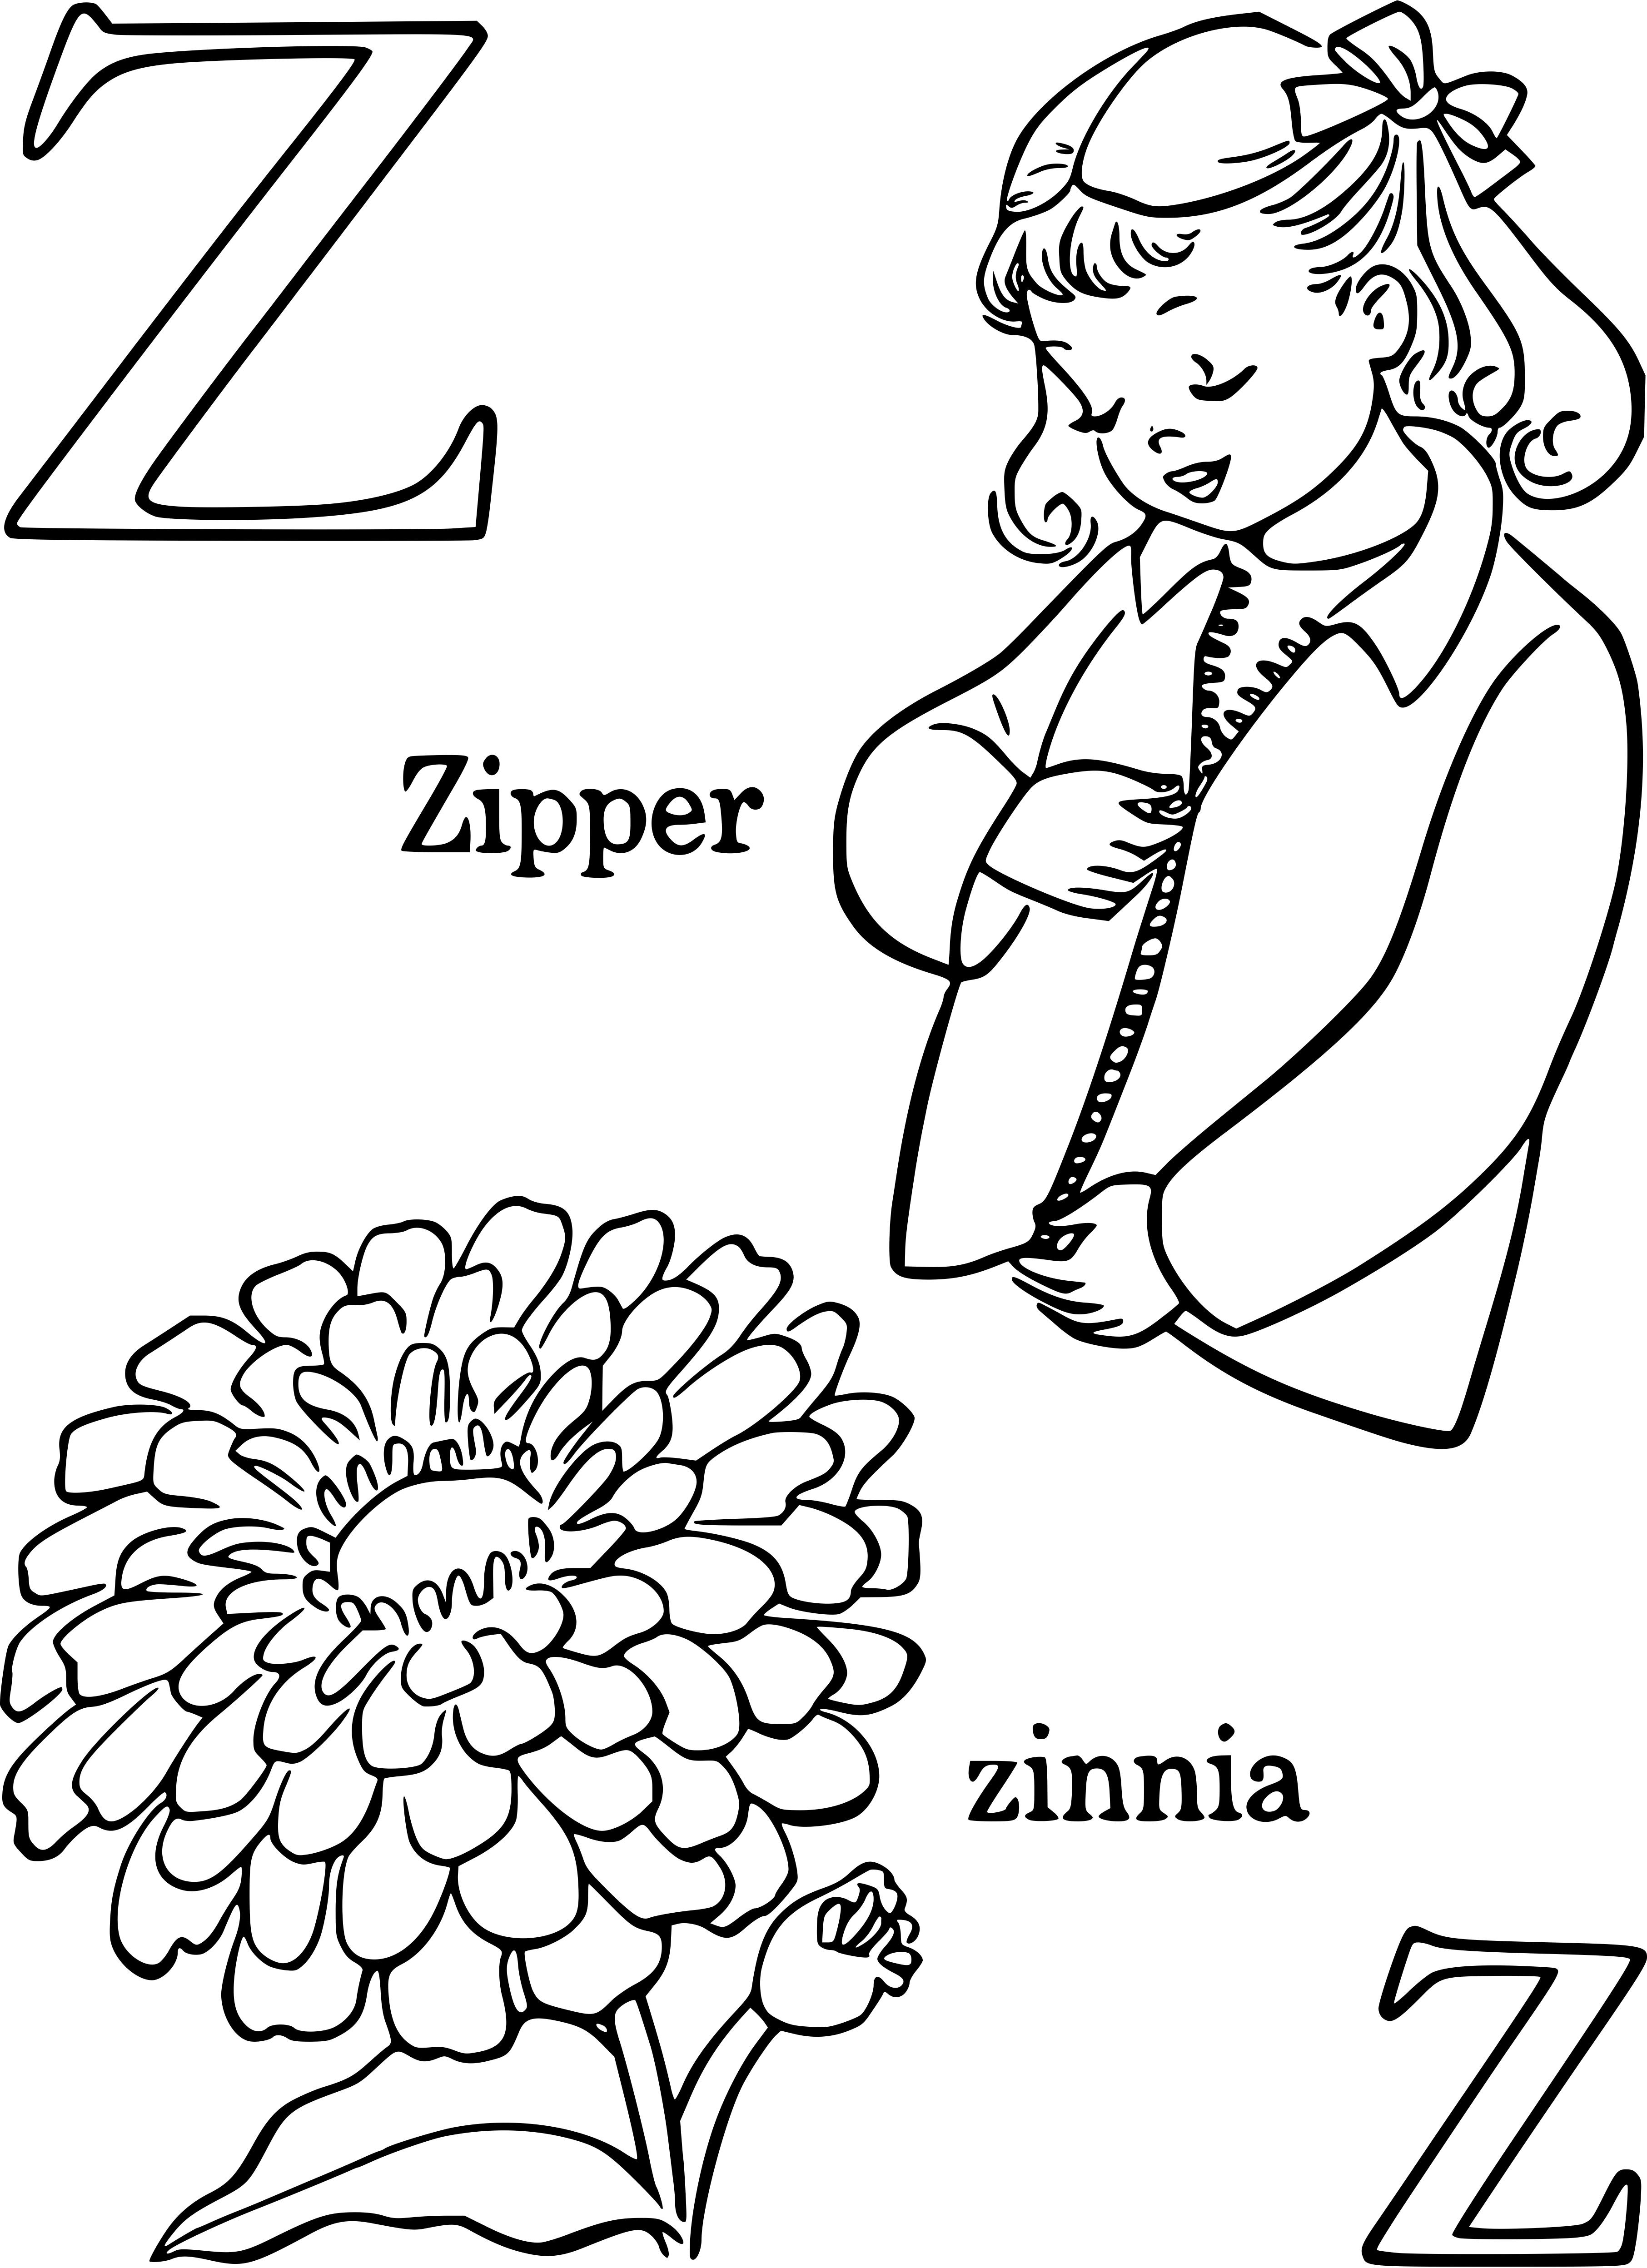 Z For Zinnia And Zipper Coloring Page